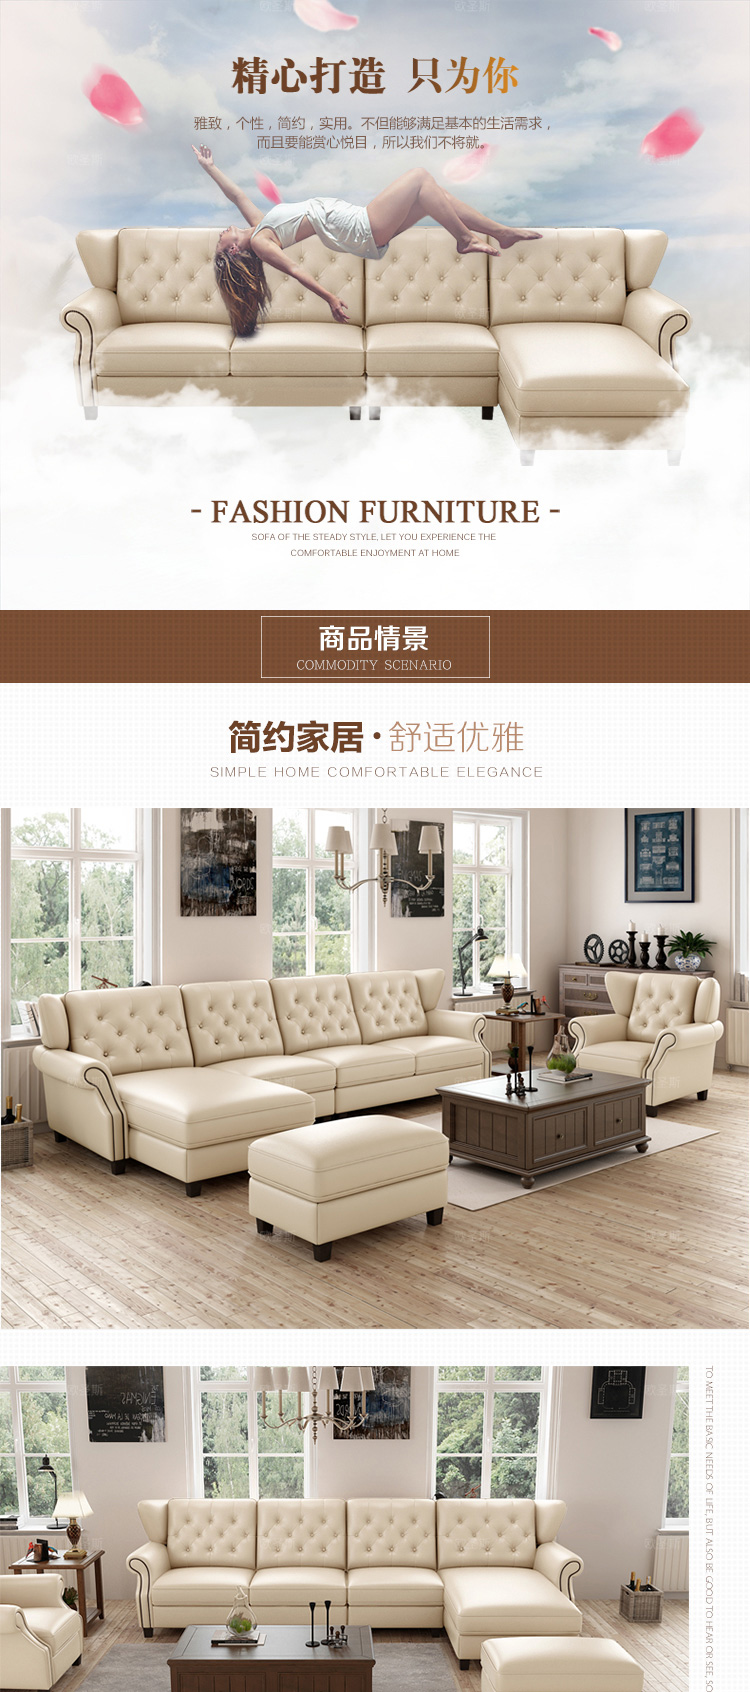 New Style Sofa Set Design Us 1350 Light Coffee American Style New Designs 2019 Sectional Living Room Furniture L Shaped Corner Victorian Leather Sofa Set F80l In Living